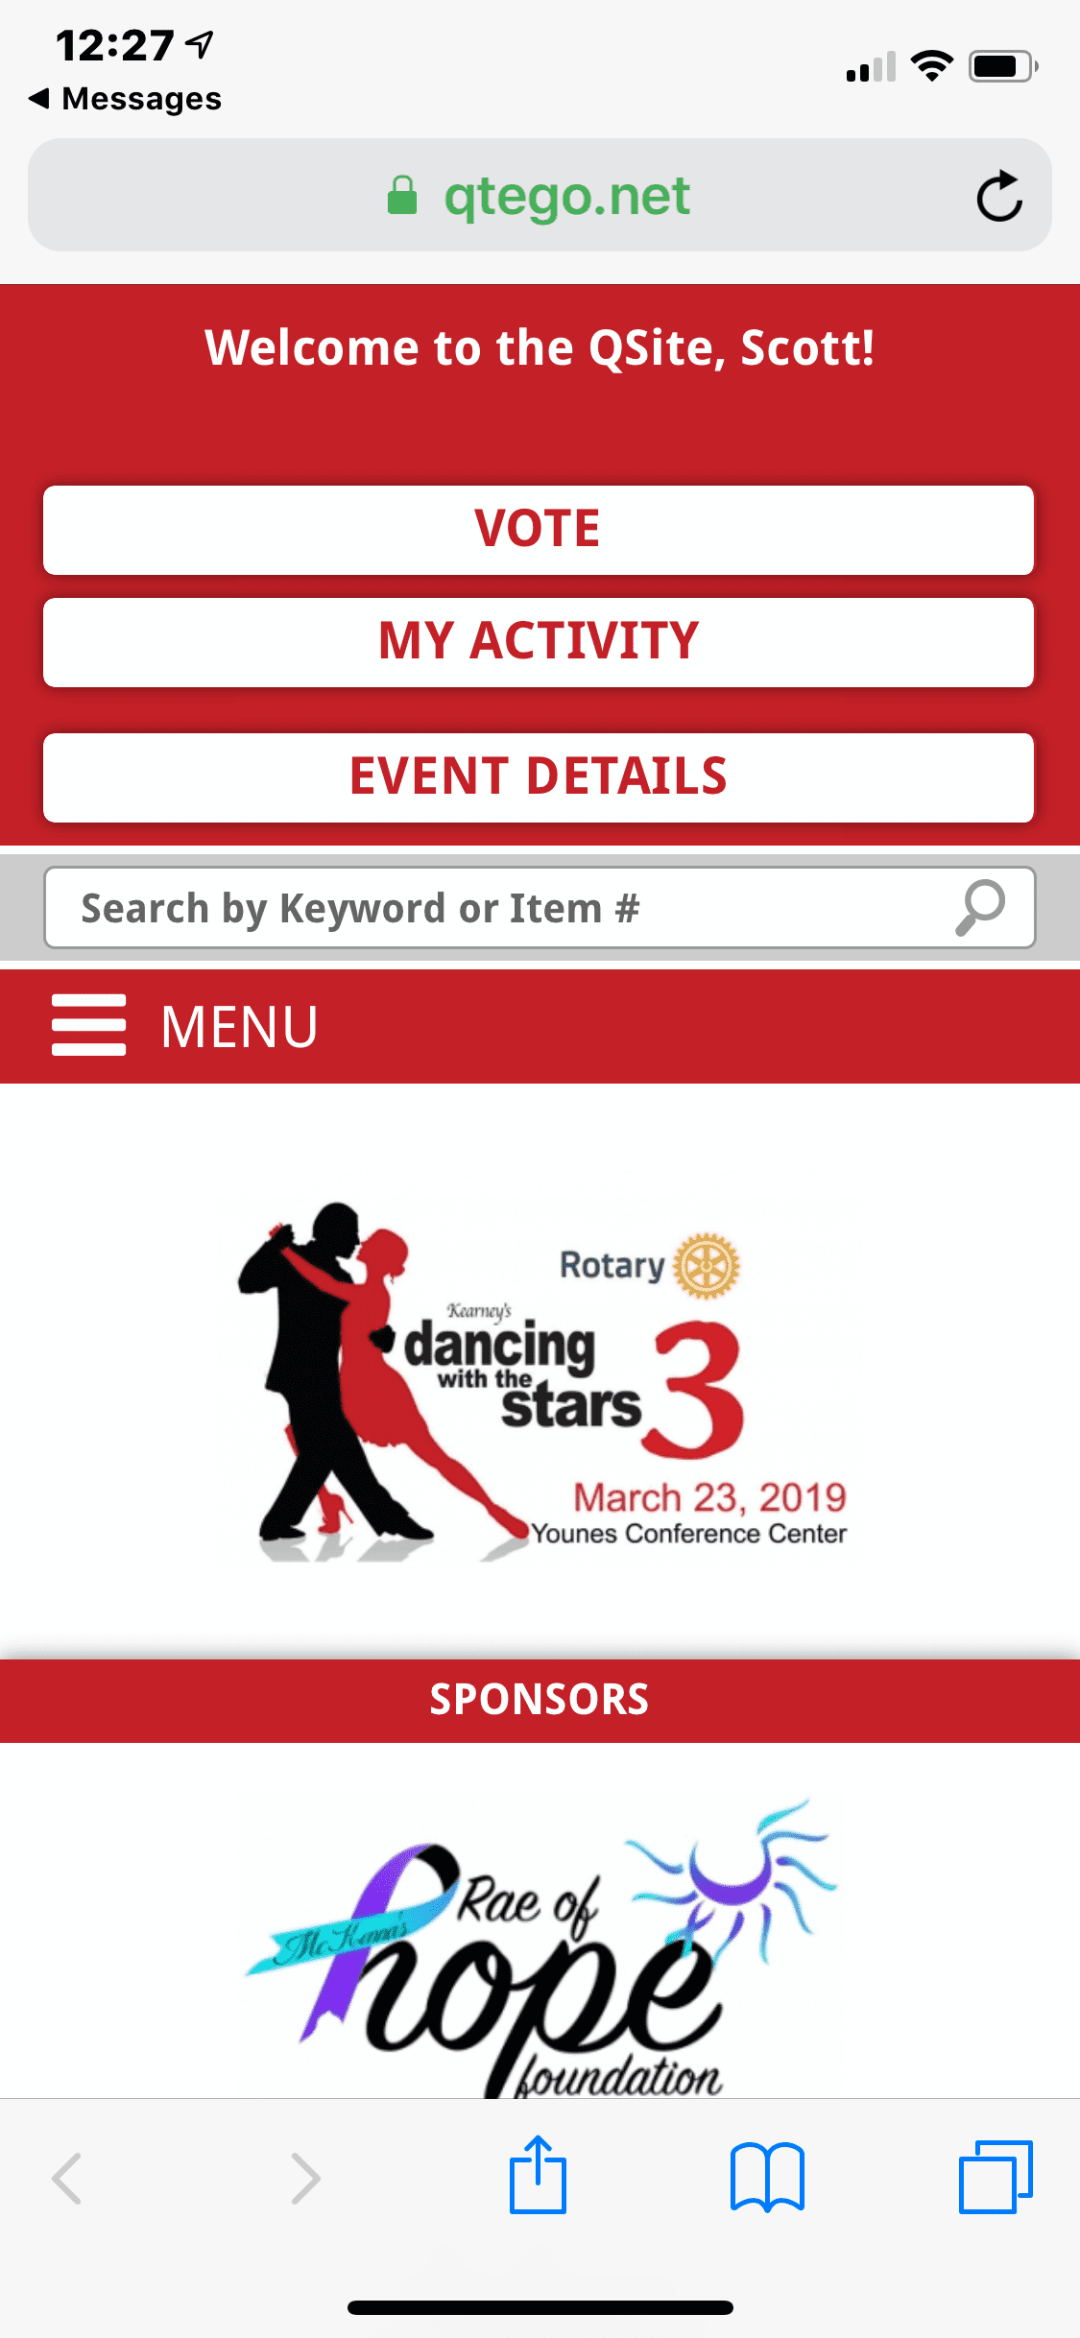 Qtego Auction Services & Kearney's Dancing with the Stars 3